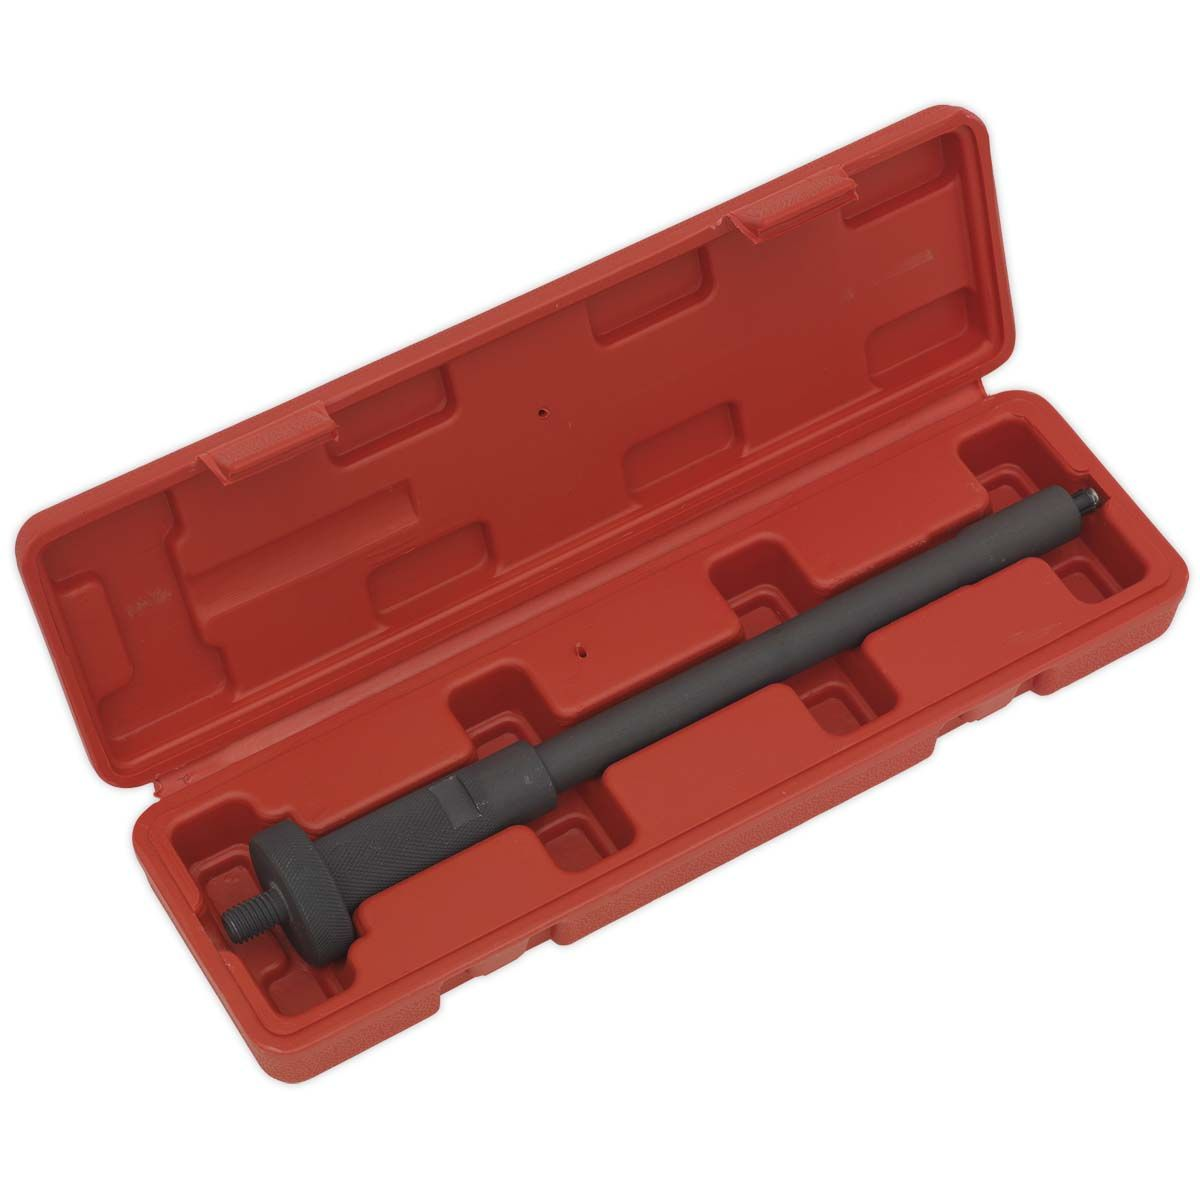 Sealey Injector Seal Removal Tool